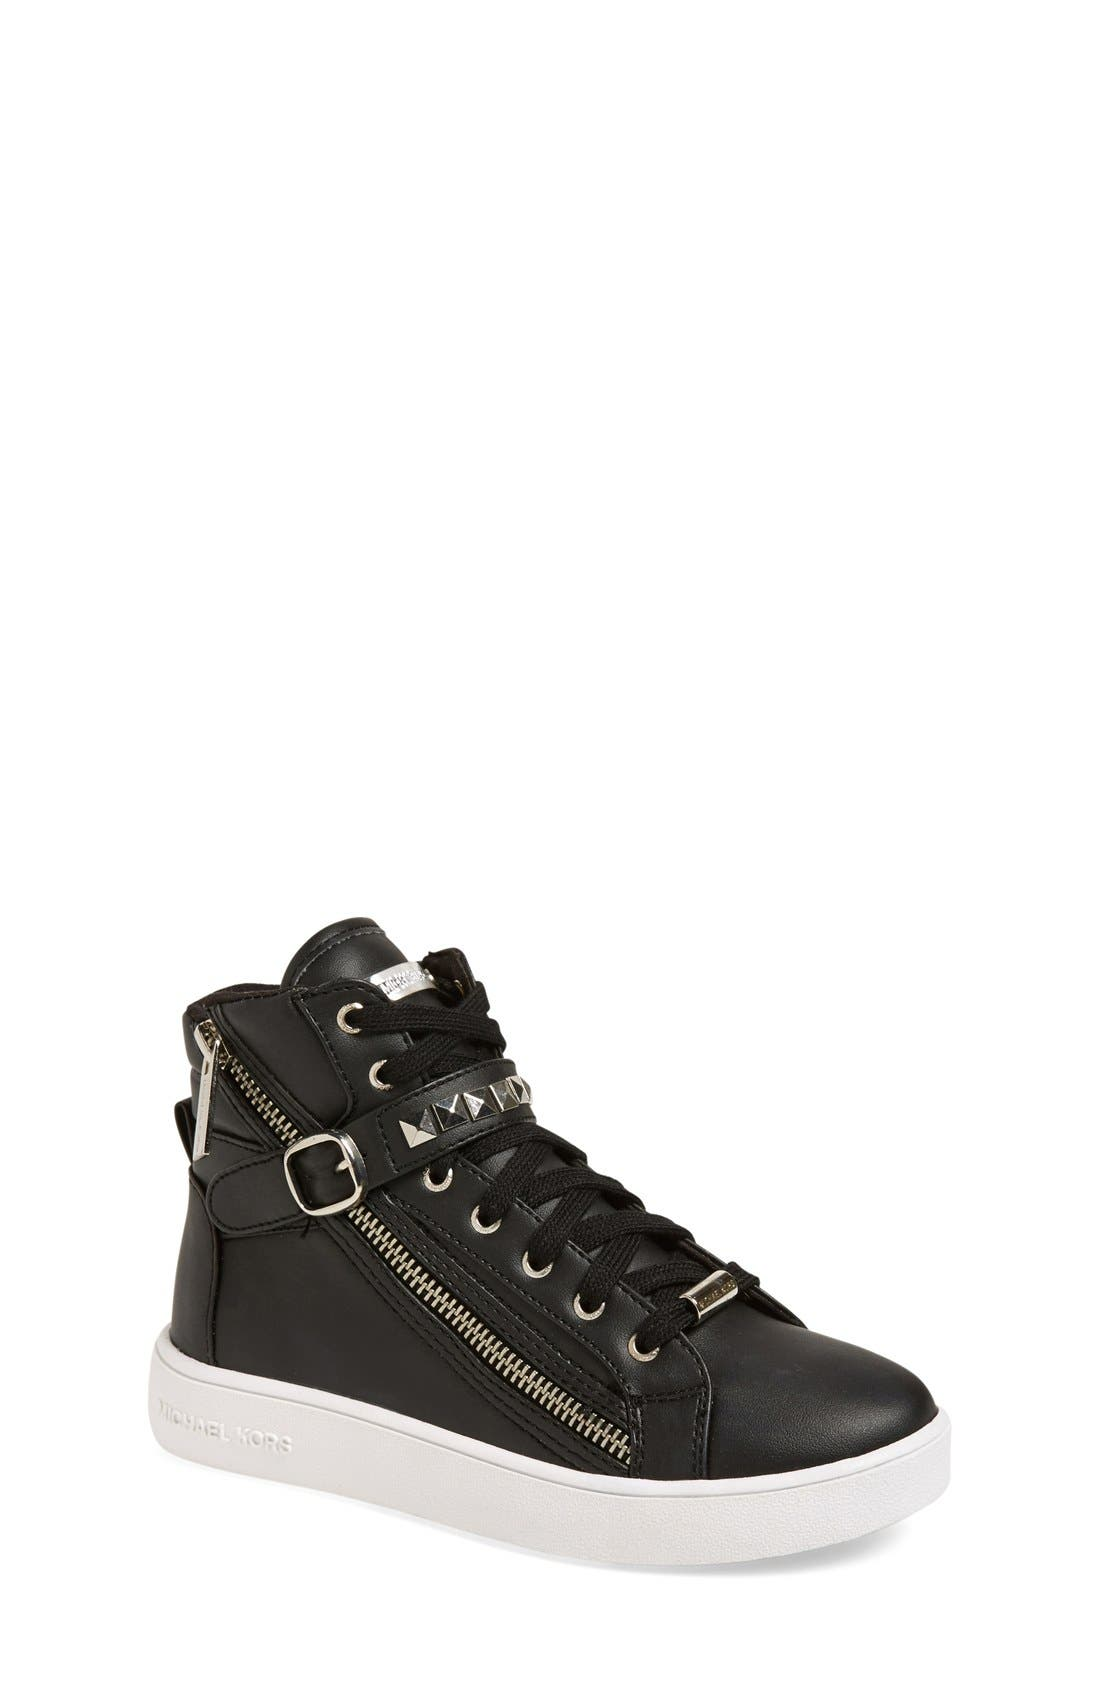 'Ivy Rory' High Top Sneaker,                             Main thumbnail 1, color,                             001